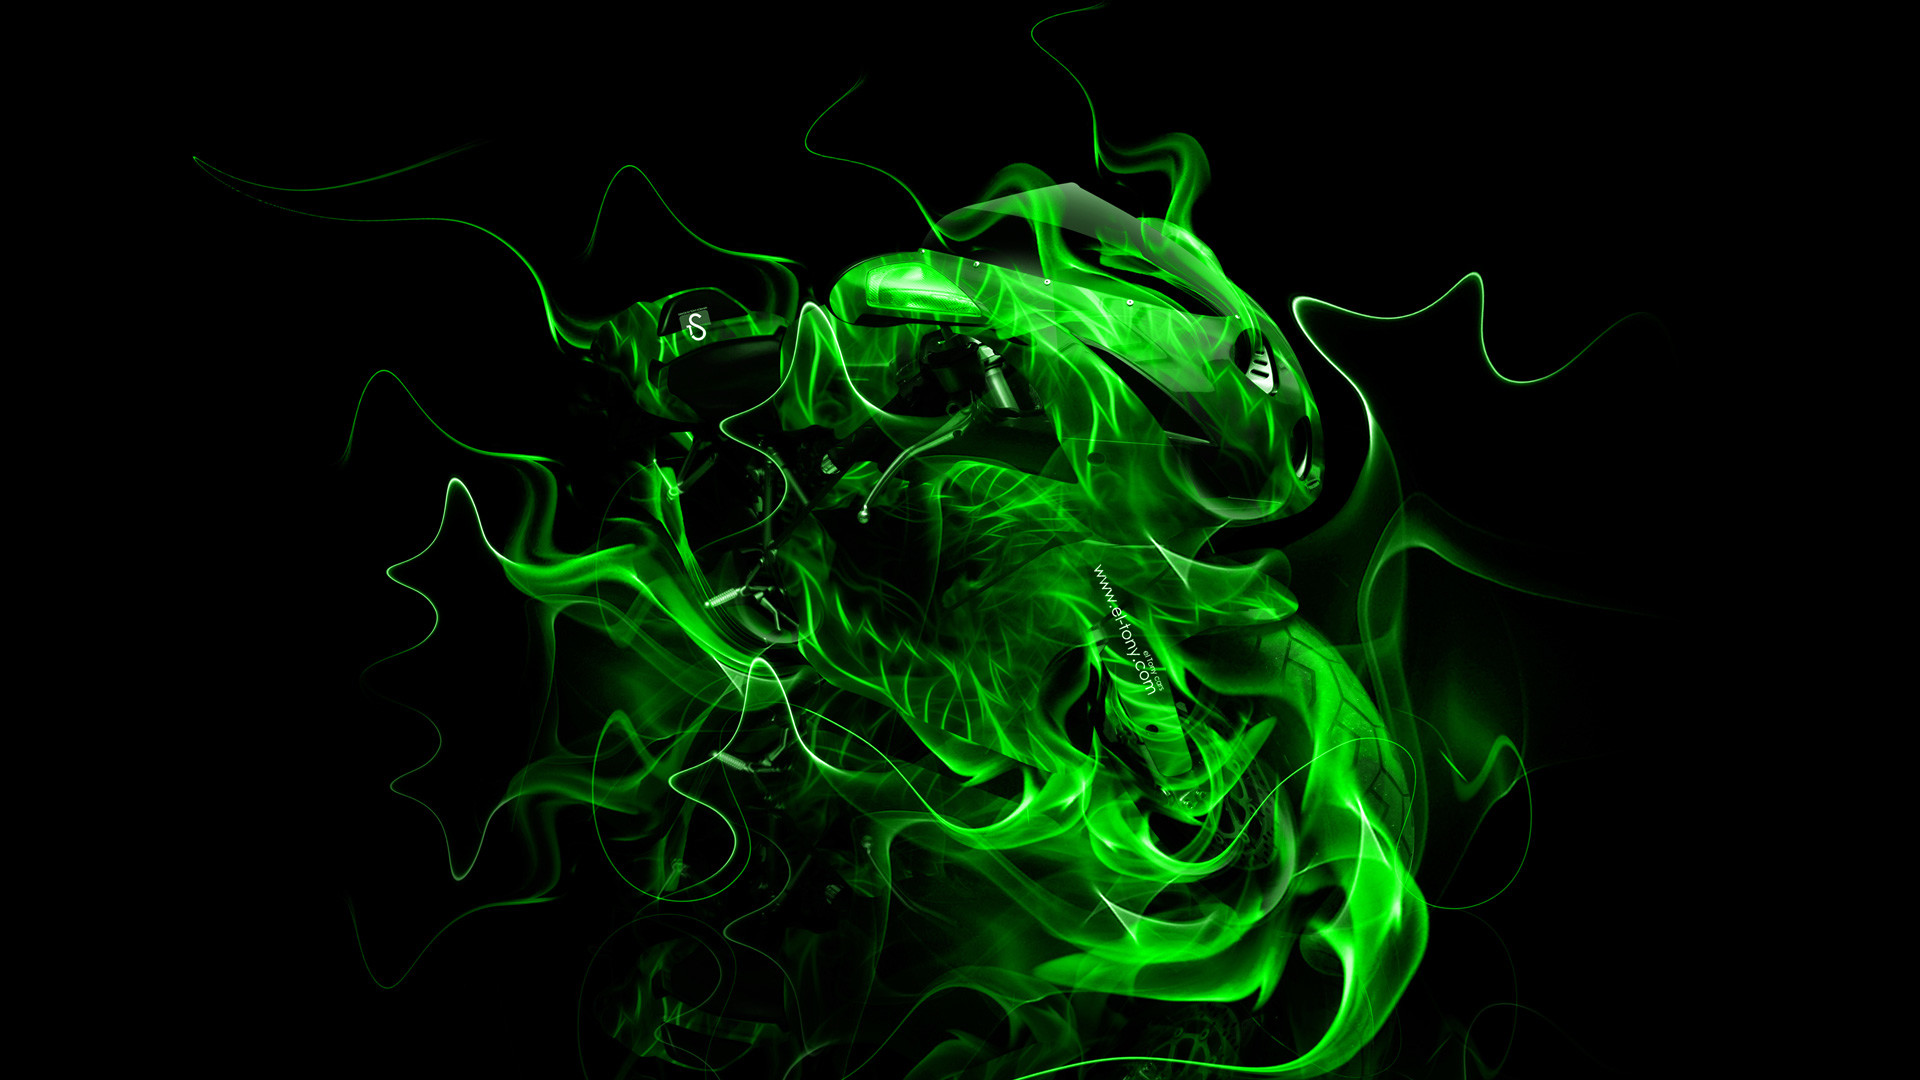 1920x1080 Neon Green HD Wallpaper › W.Impex